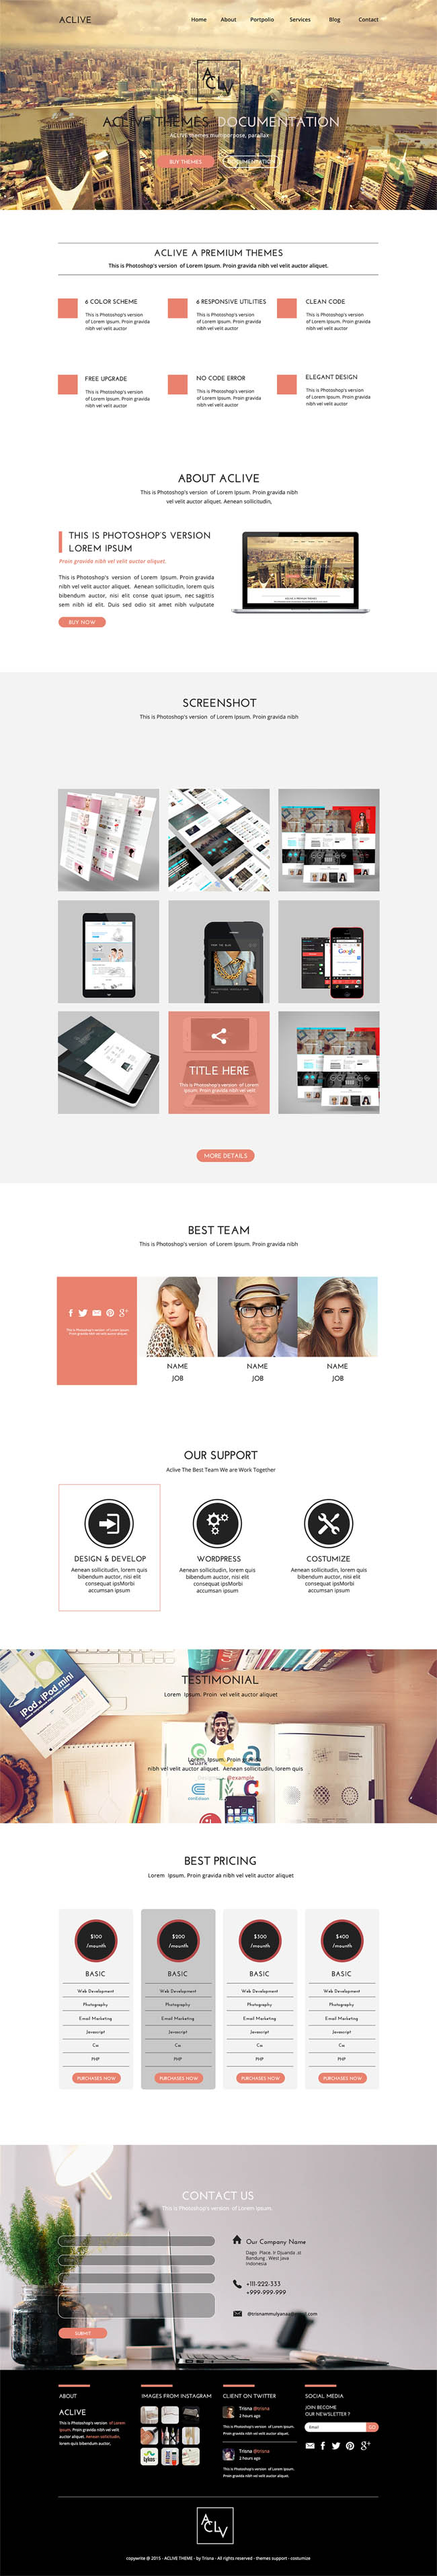 Aclive : Free PSD and HTML Landing Page Template